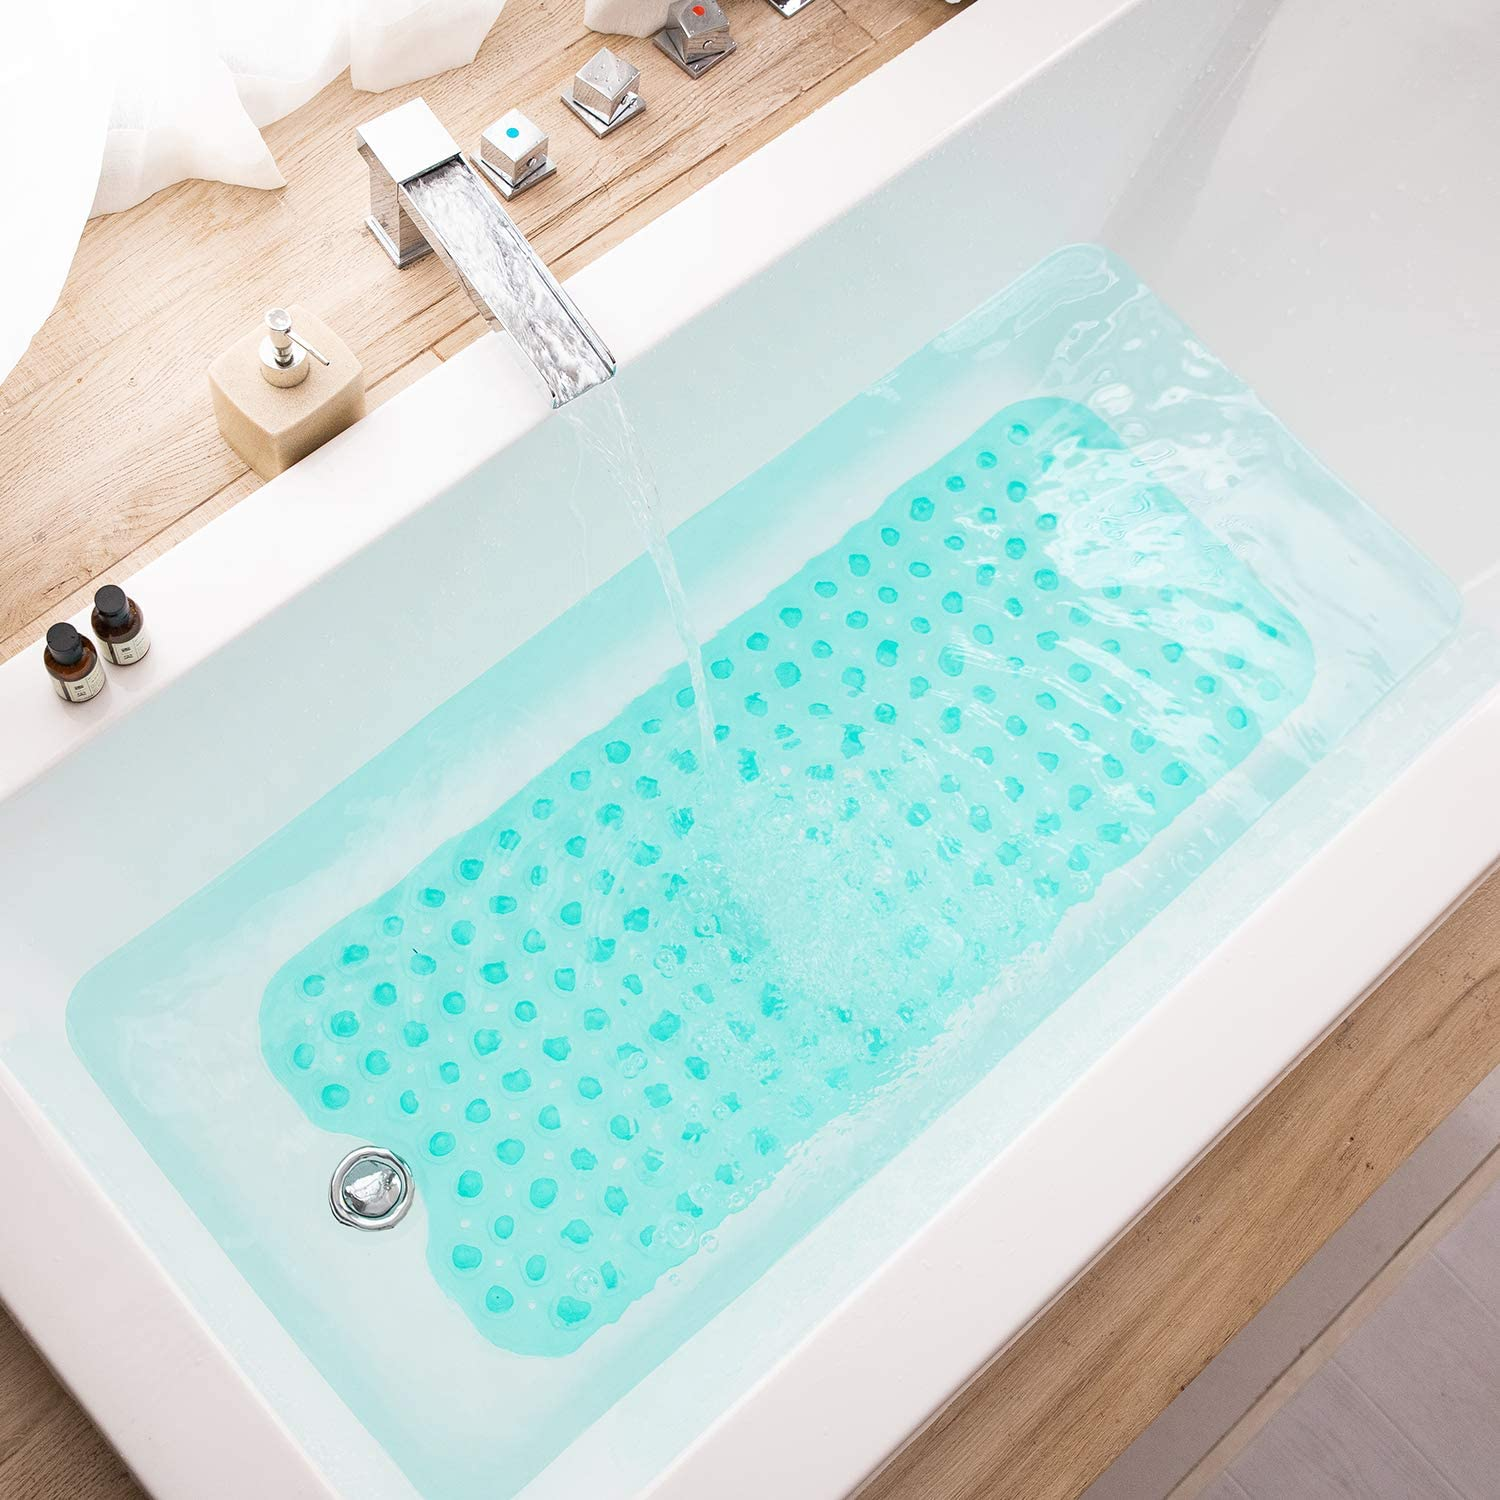 Clear Turquoise Teeshly Bathtub Mats for Shower Tub Extra Long Non-Slip Bath Mat Bath Tub Mat for Bathroom with Machine Washable 39 x 16 Inch Shower Mat with Drain Holes and Suction Cups